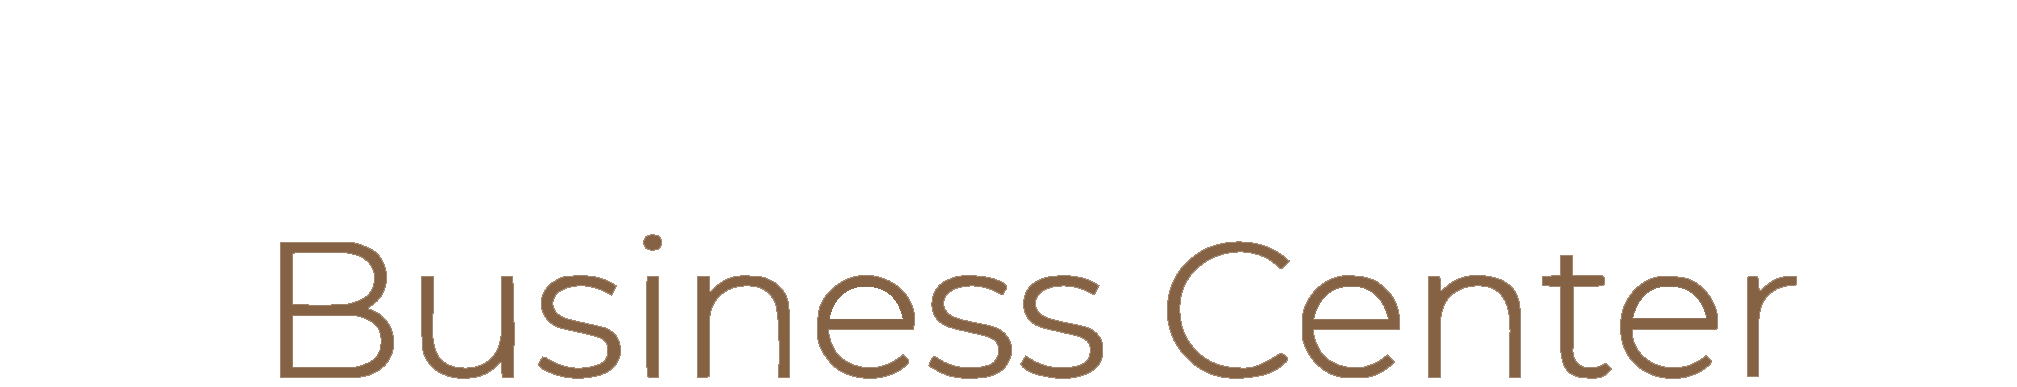 VANTA Business Center